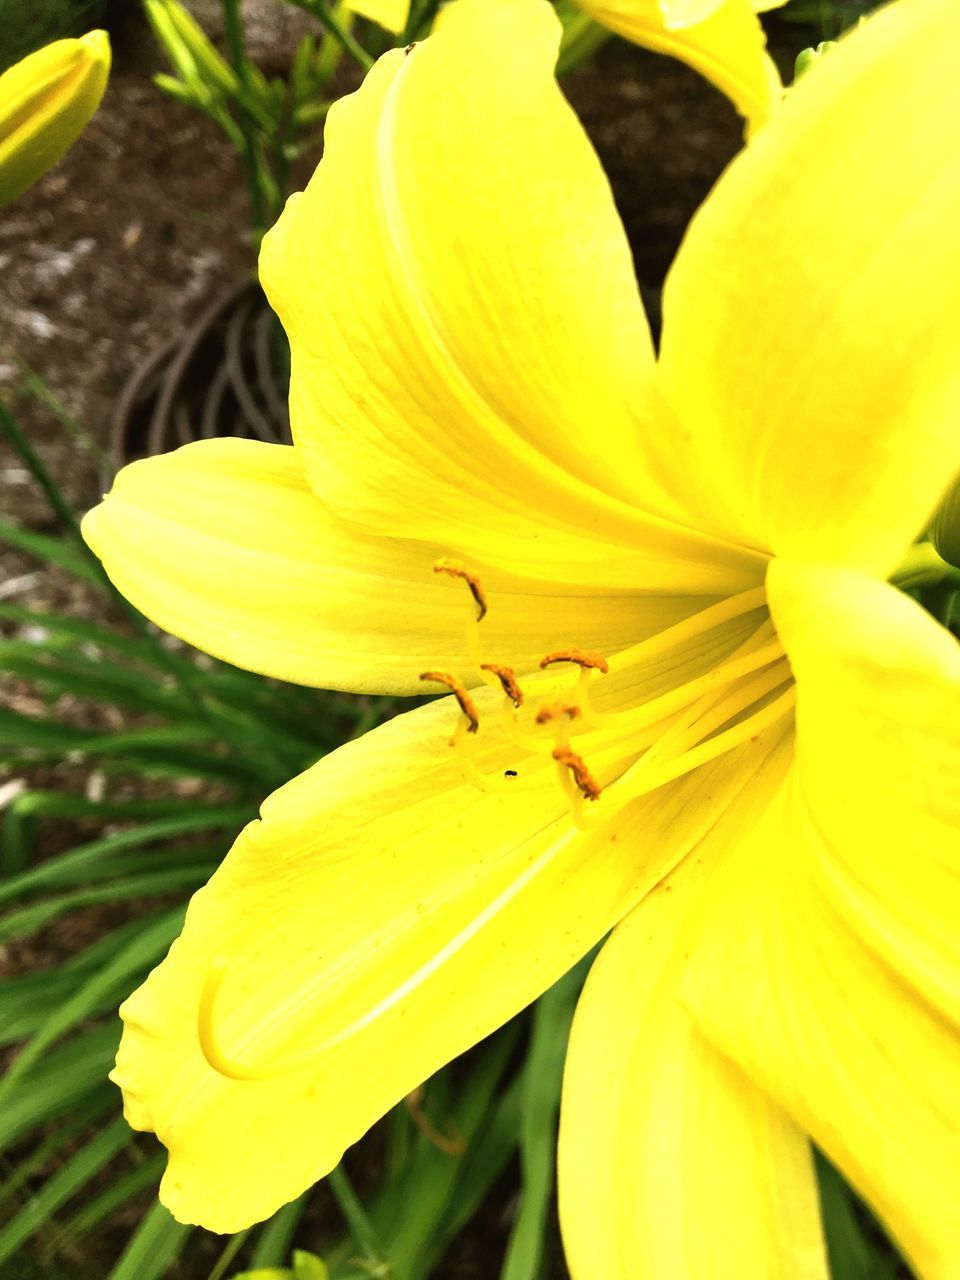 petal, yellow, flower, nature, flower head, beauty in nature, freshness, no people, growth, fragility, outdoors, close-up, day, plant, day lily, blooming, animal themes